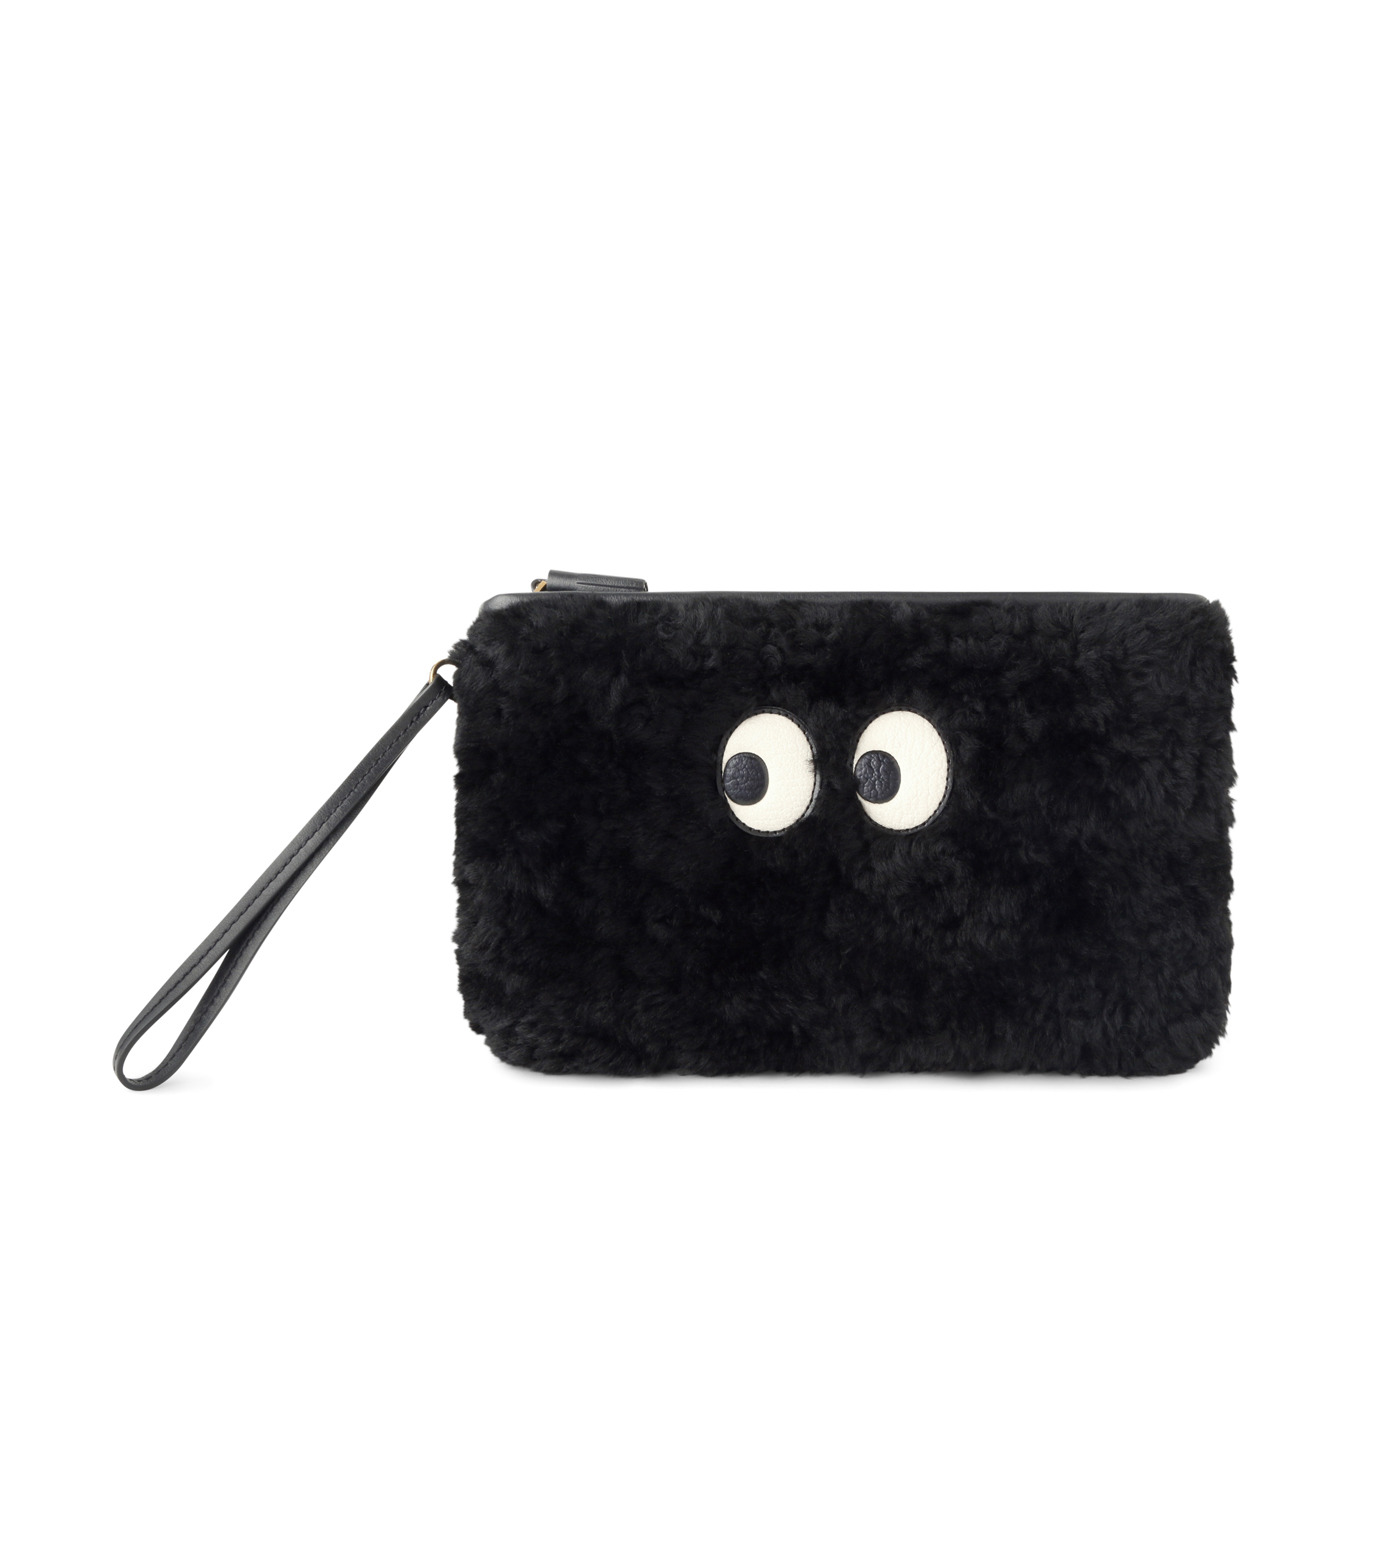 Anya Hindmarch(アニヤハインドマーチ)のZip Top Pouch Ghost Shearling-BLACK-933841-13 拡大詳細画像1